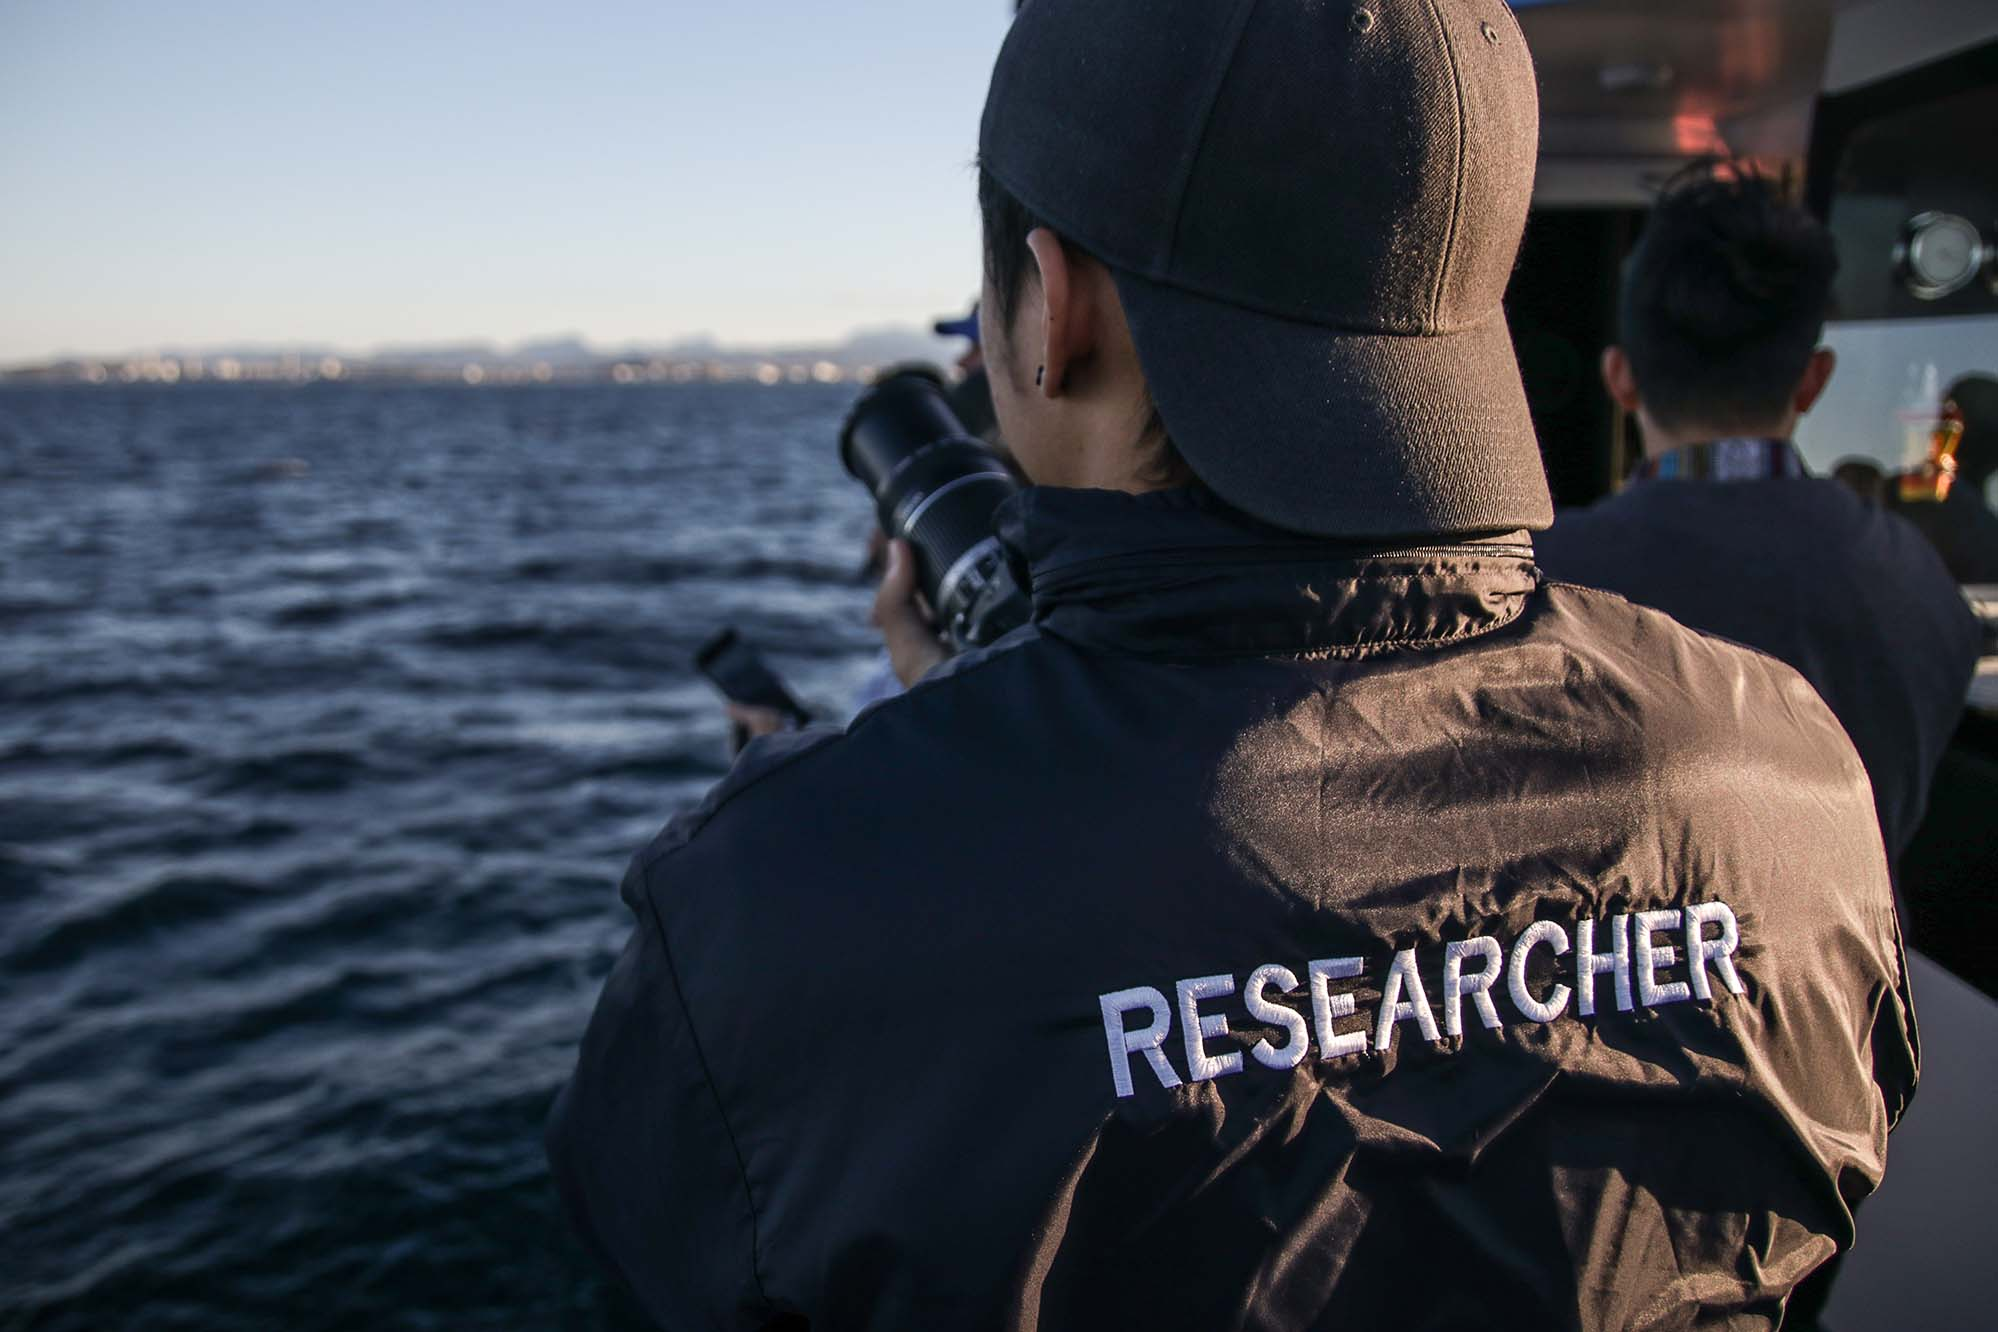 Responsible whale watching: What does it mean?